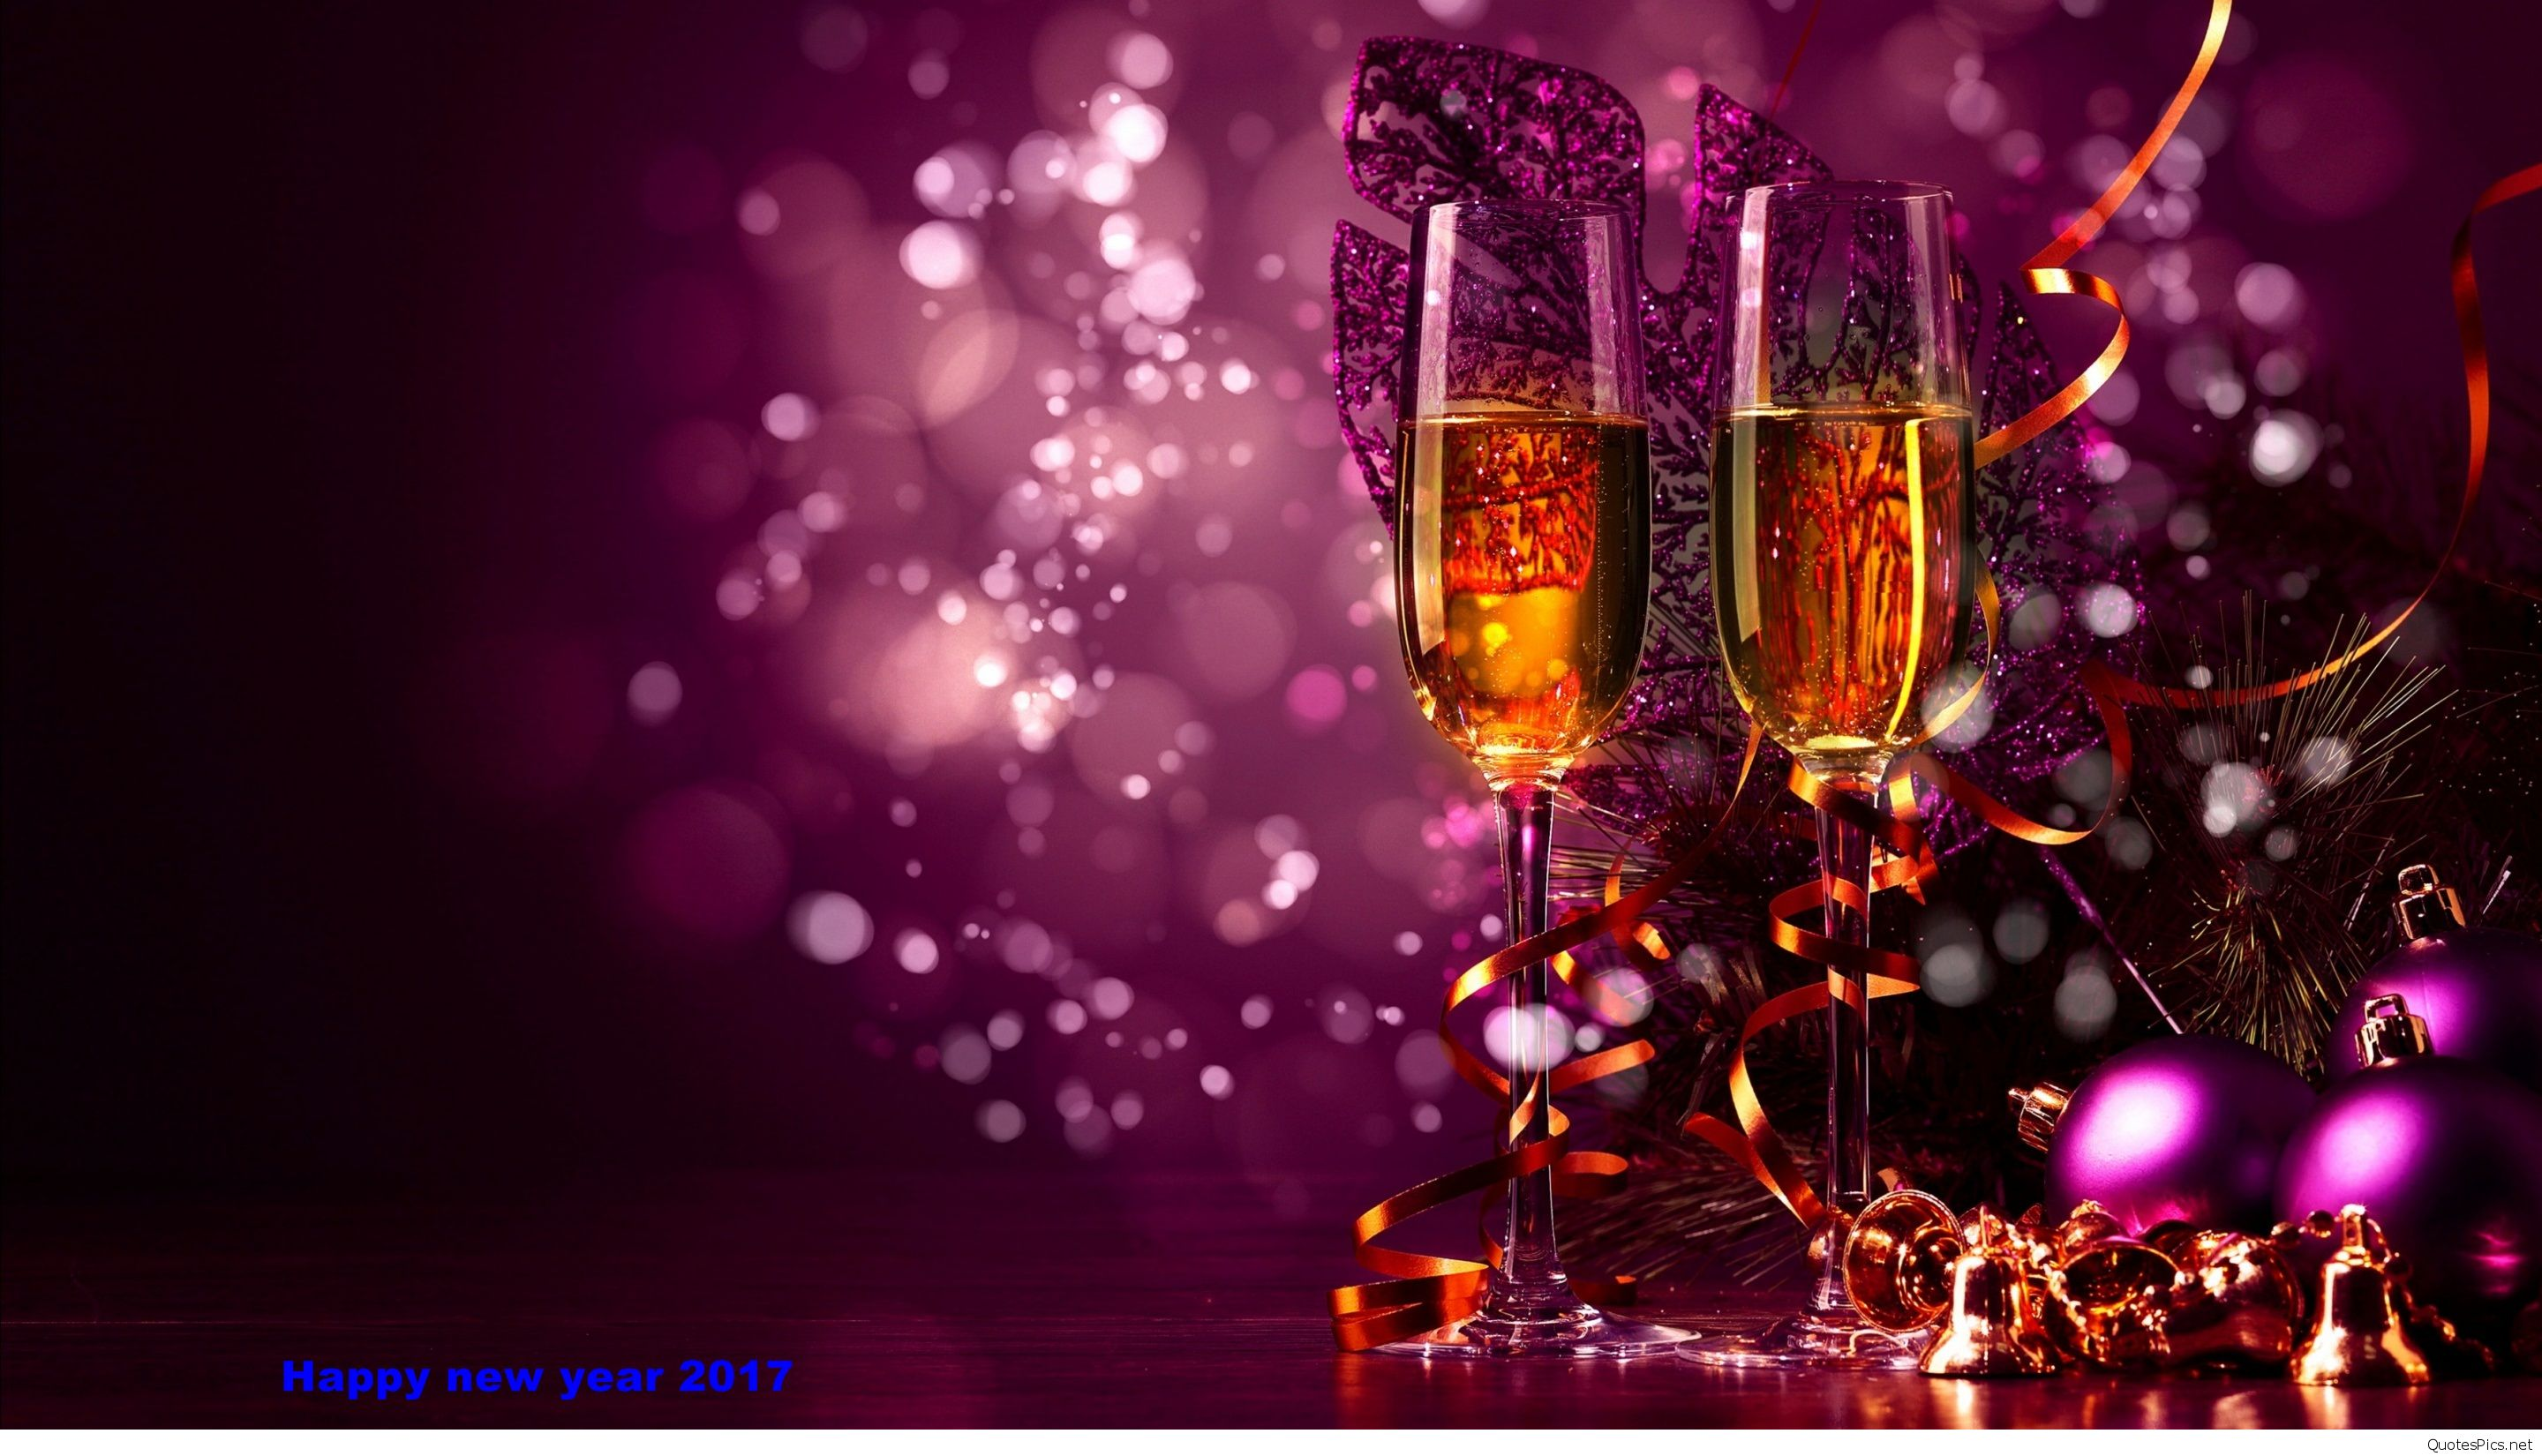 Happy new year cards pictures champagne 2017 2880x1650